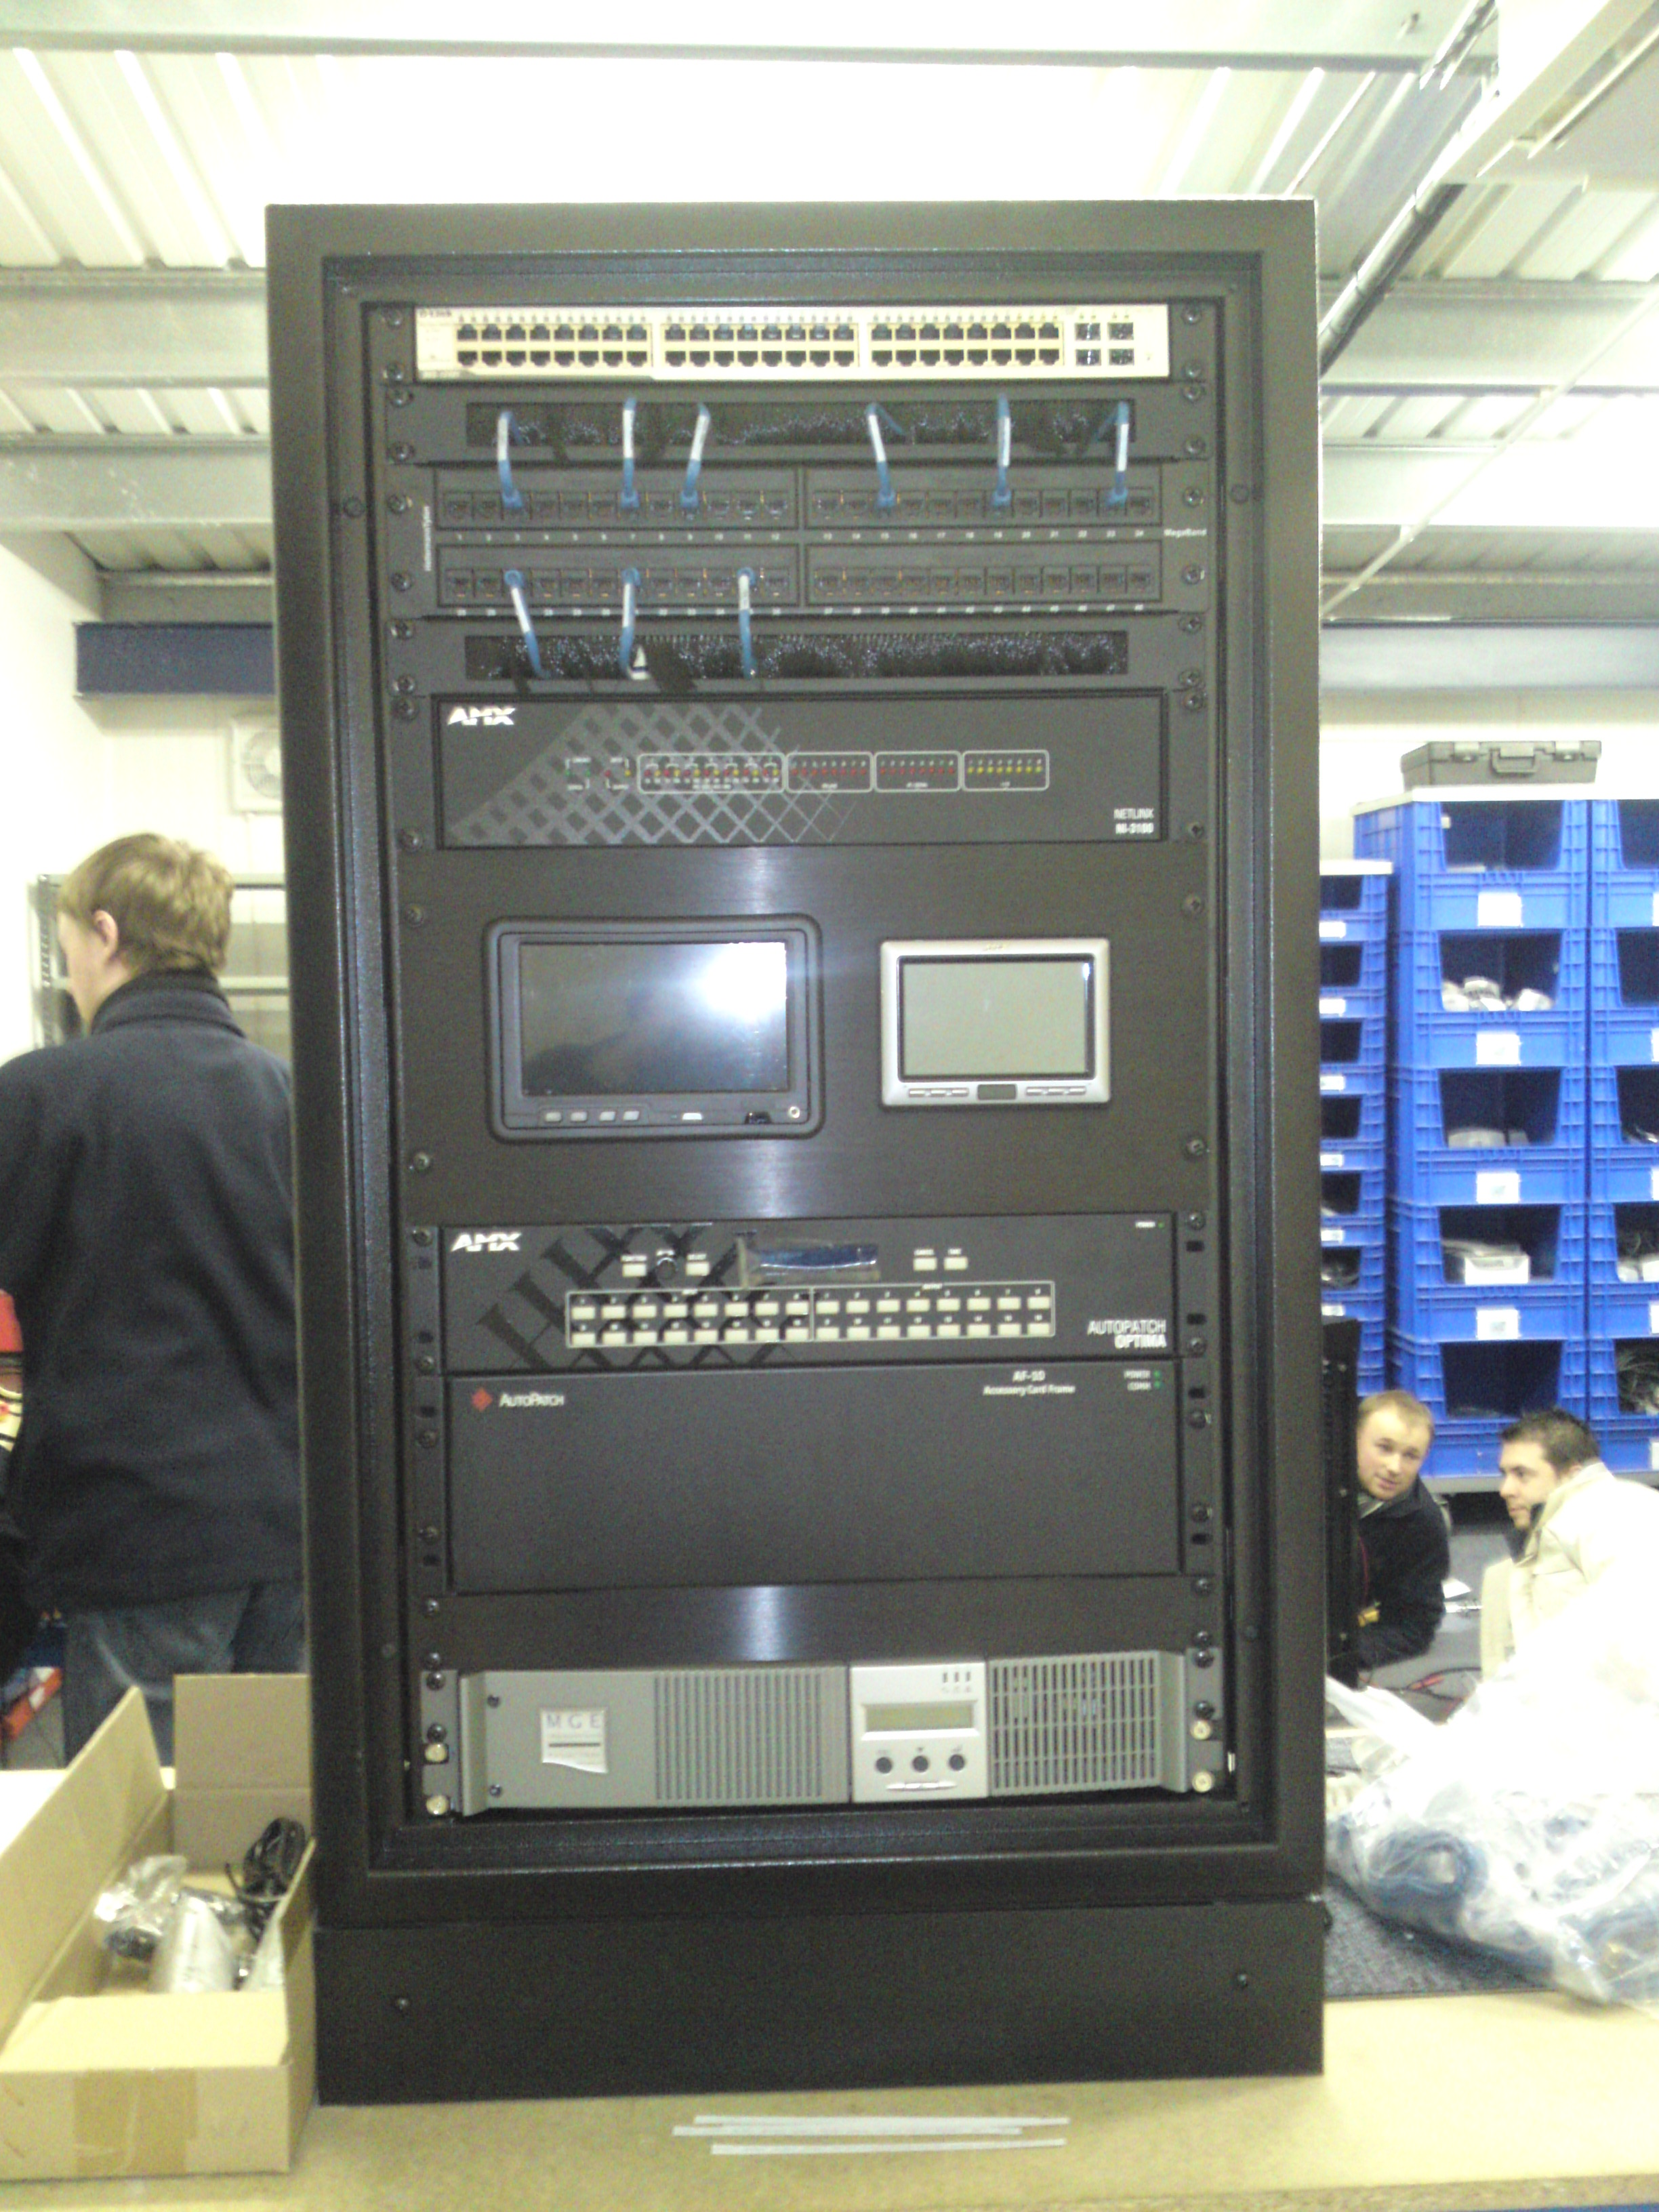 Audio visual control centre